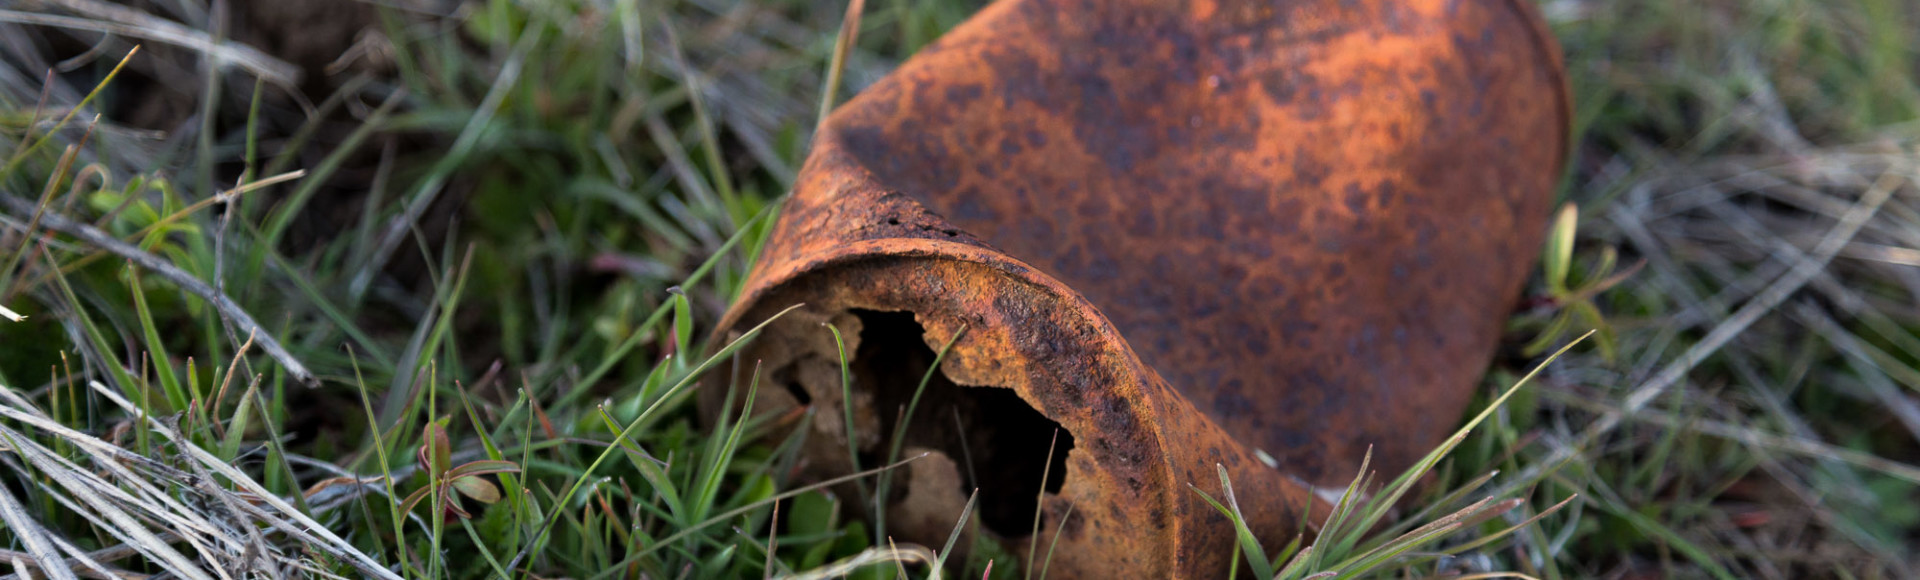 Old Rusty Can in Green Grass